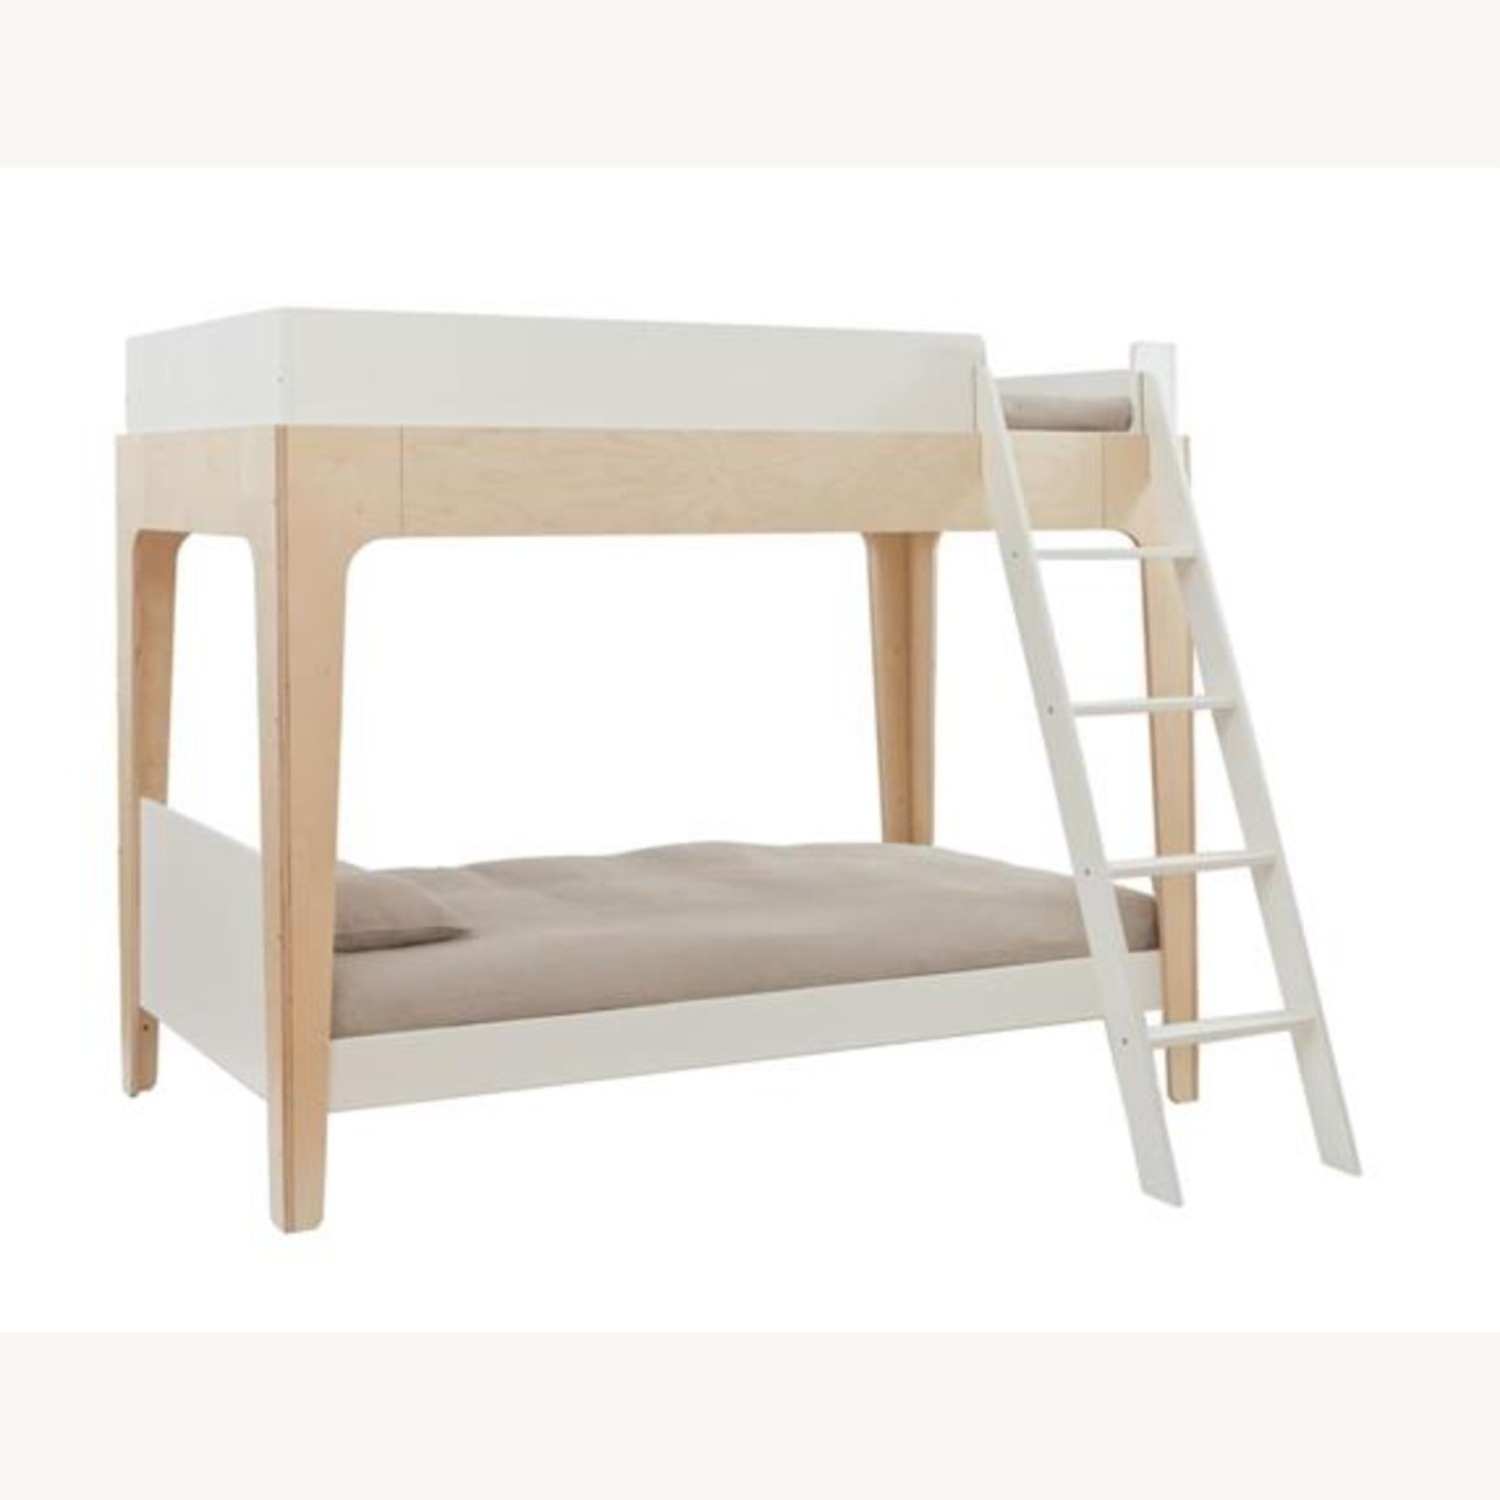 Oeuf Perch Modern Classic Birch Bunk Bed - image-1